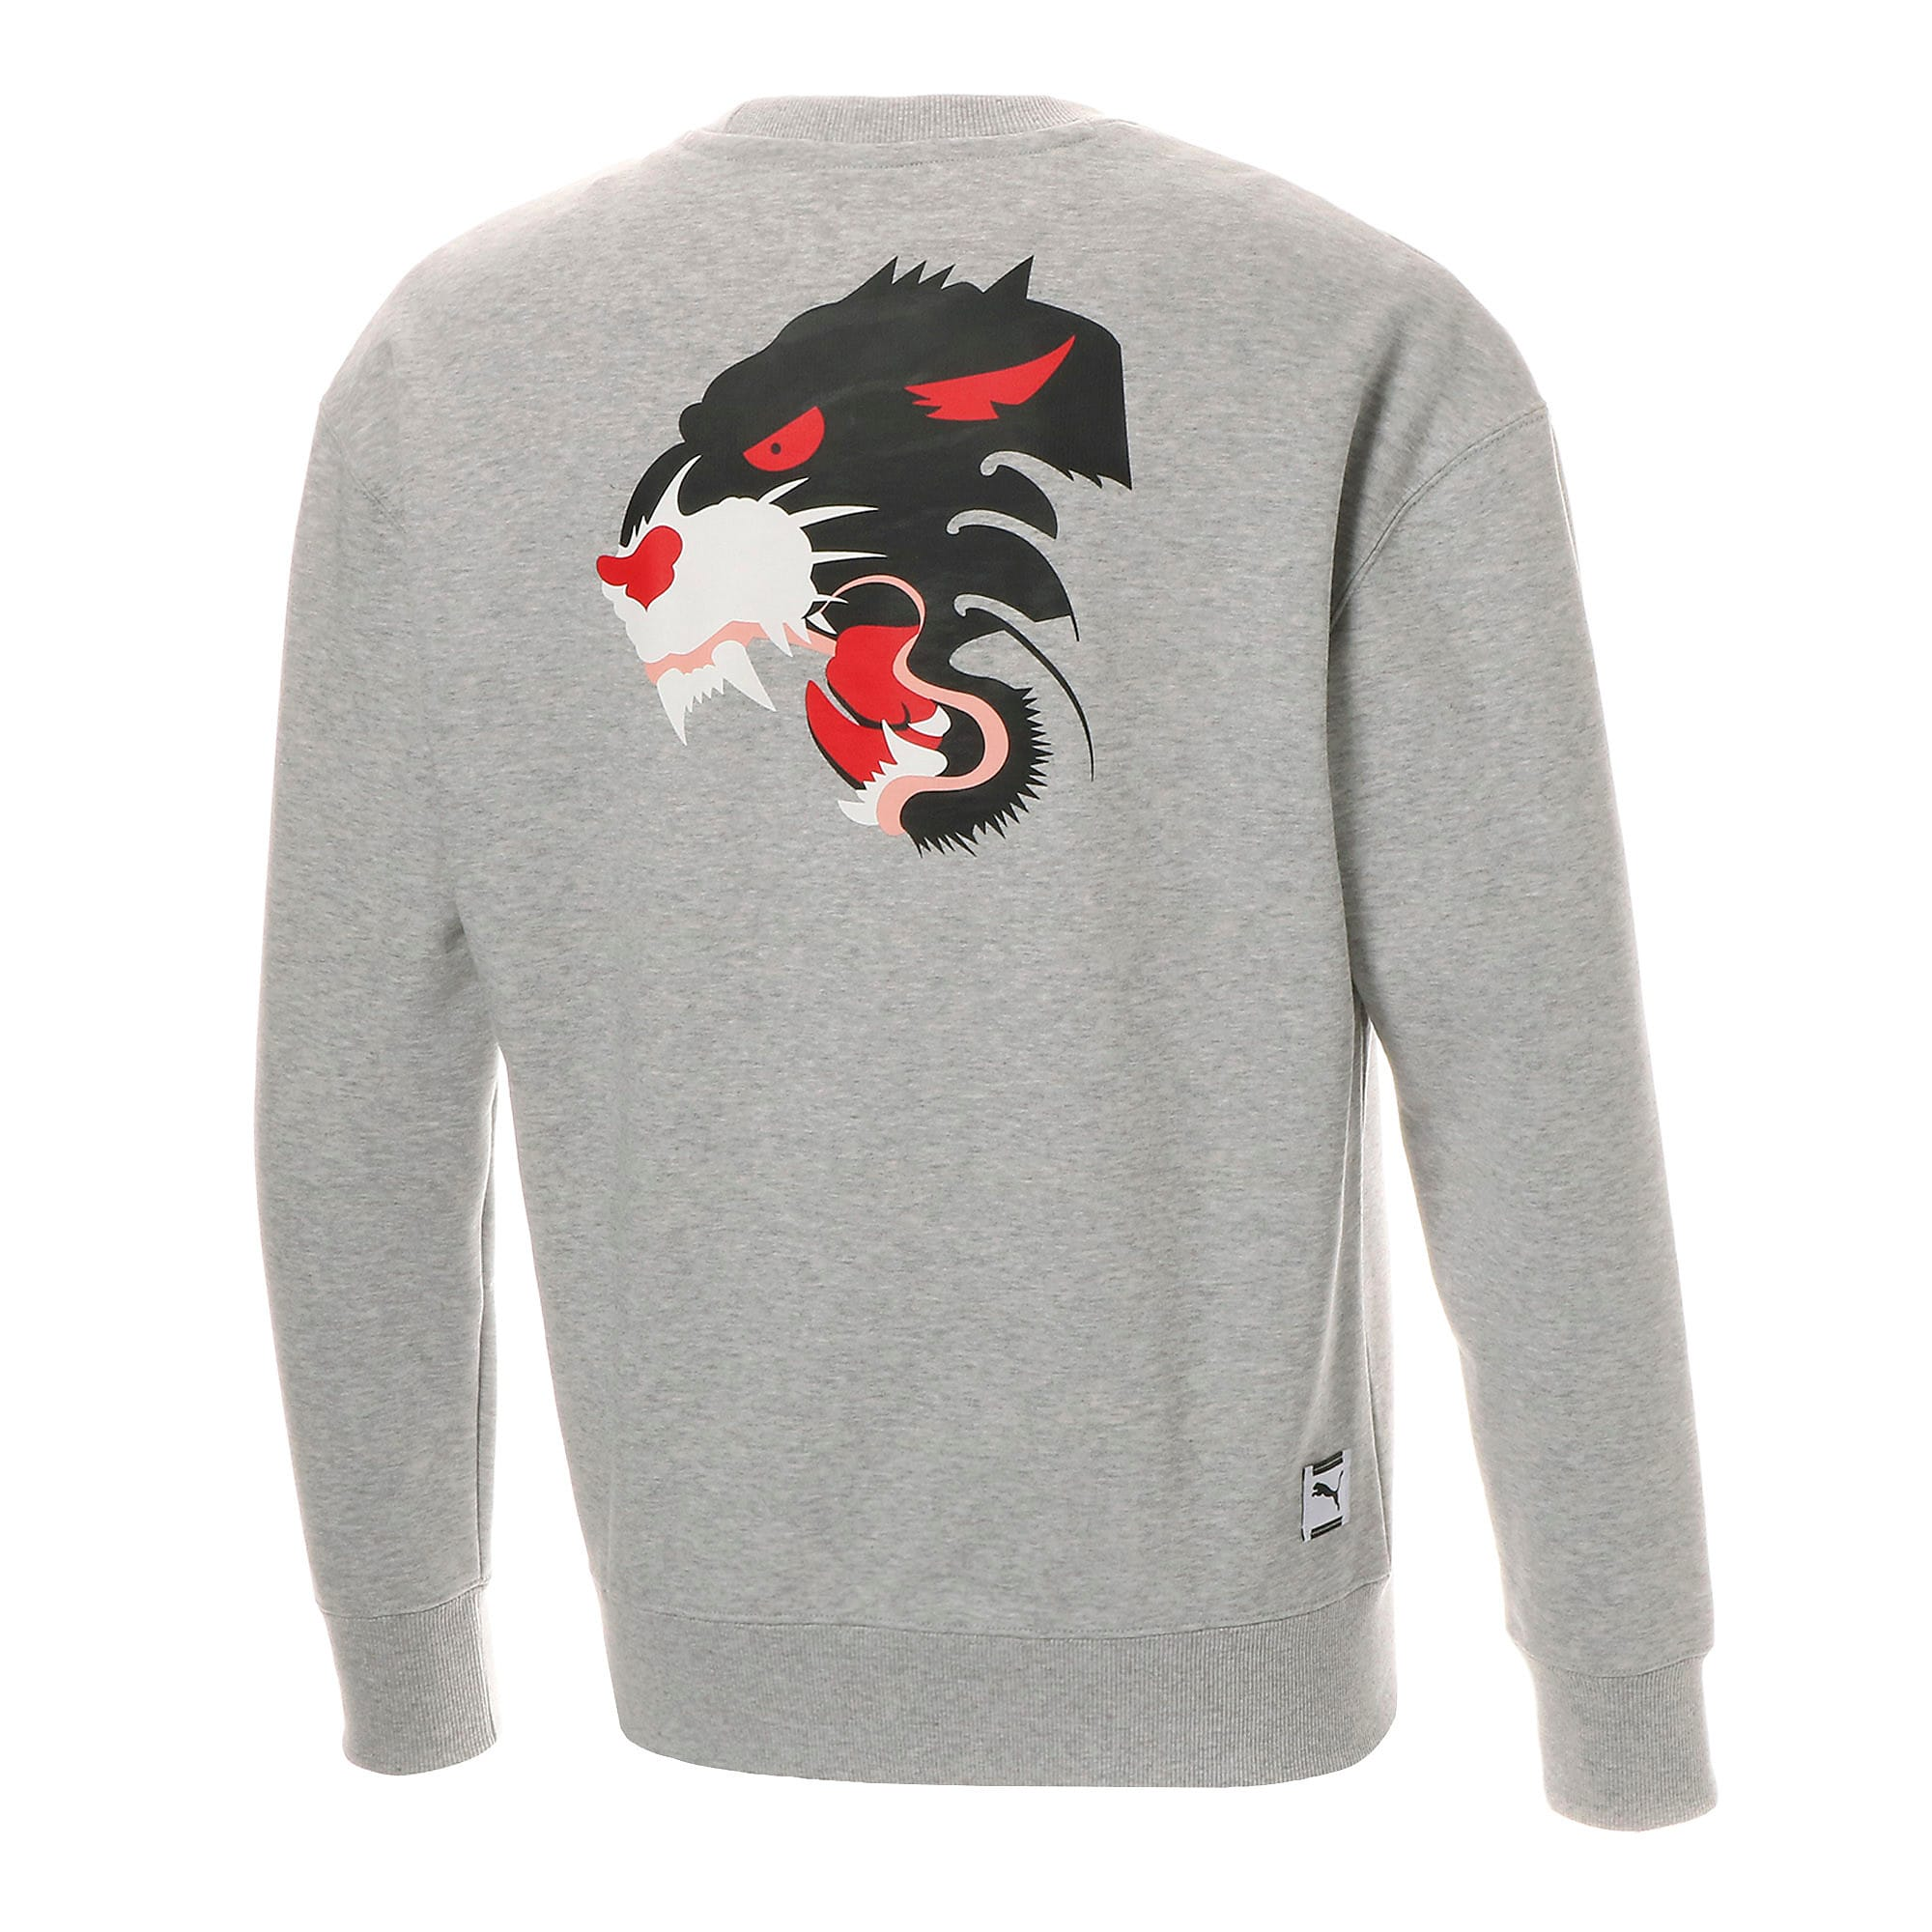 Thumbnail 2 of FIERCE CAT クルースウェット, Light Gray Heather, medium-JPN